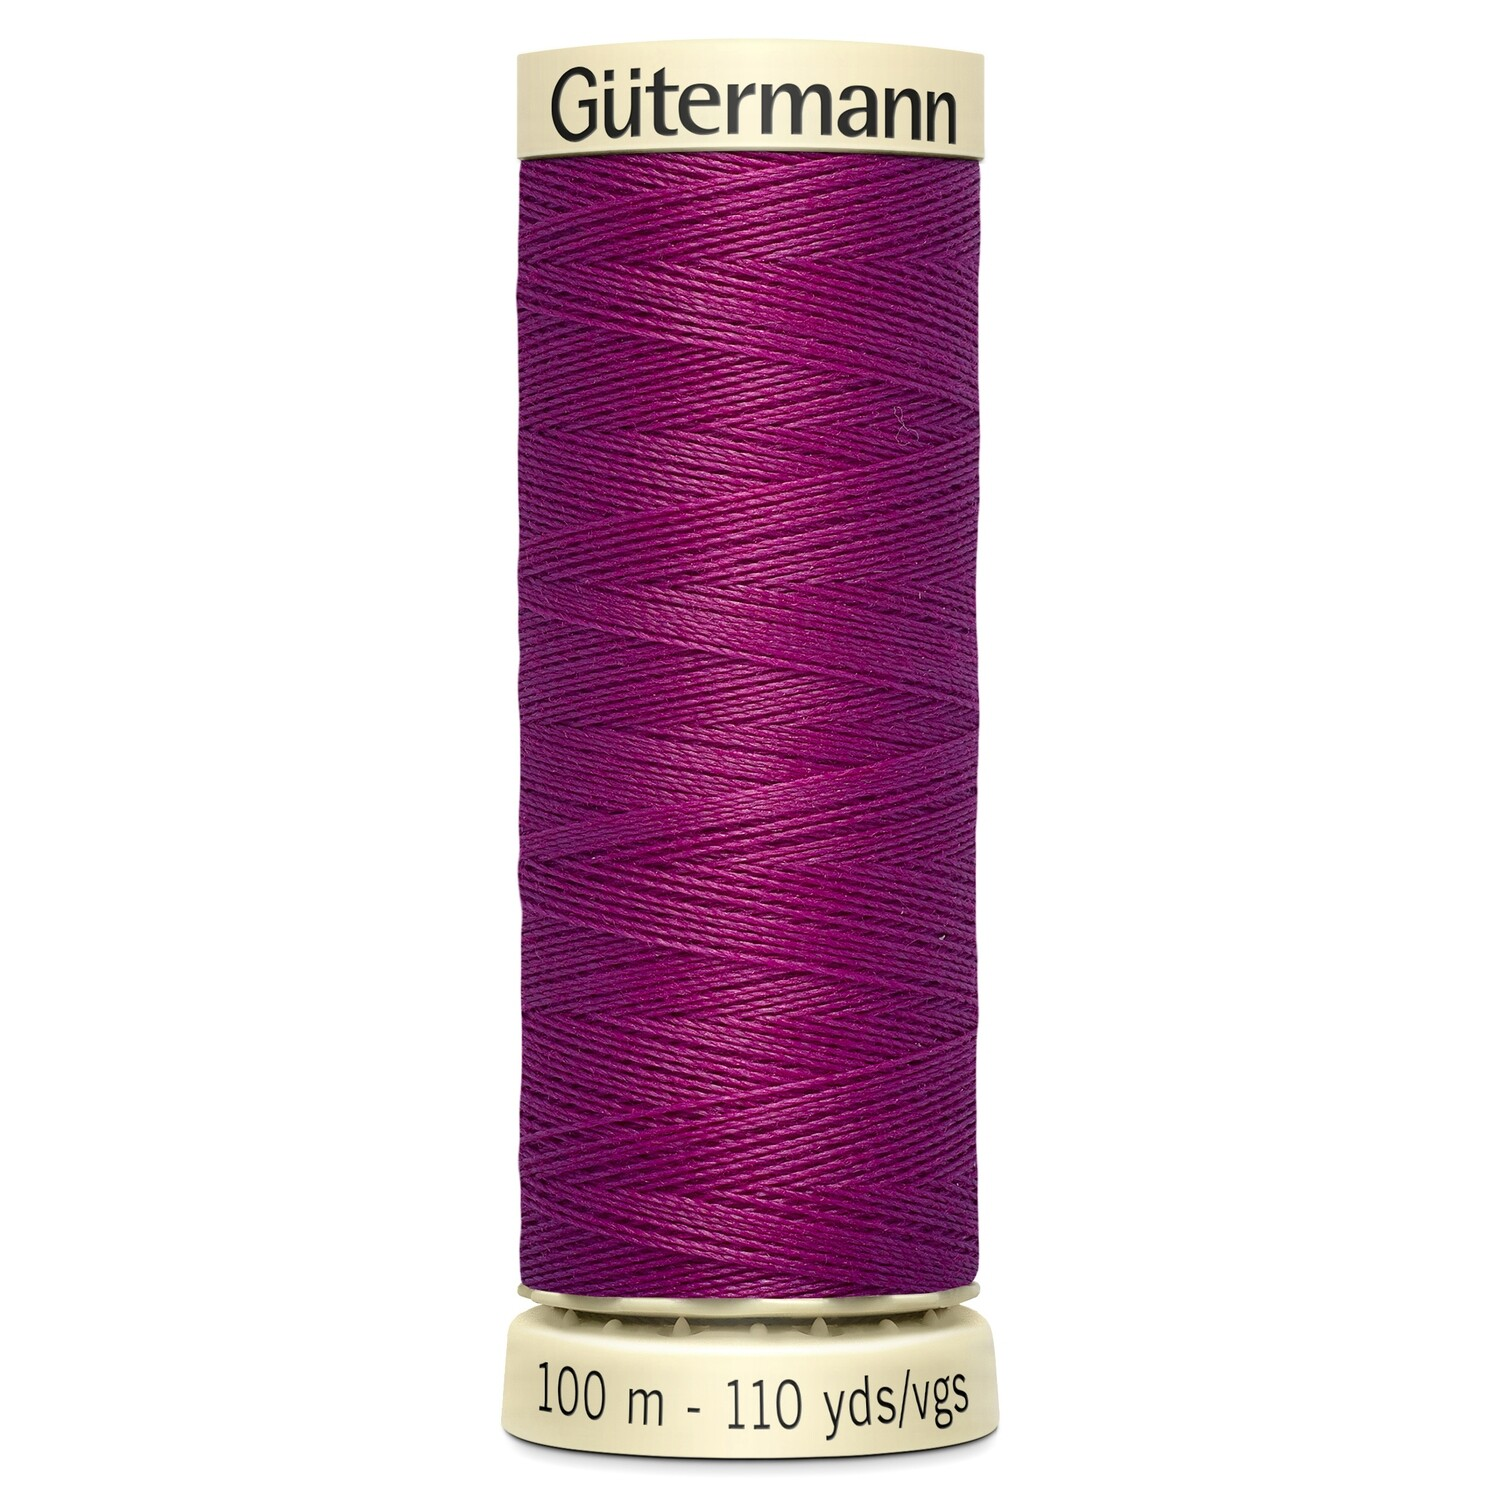 Gutermann Sew-All thread 247